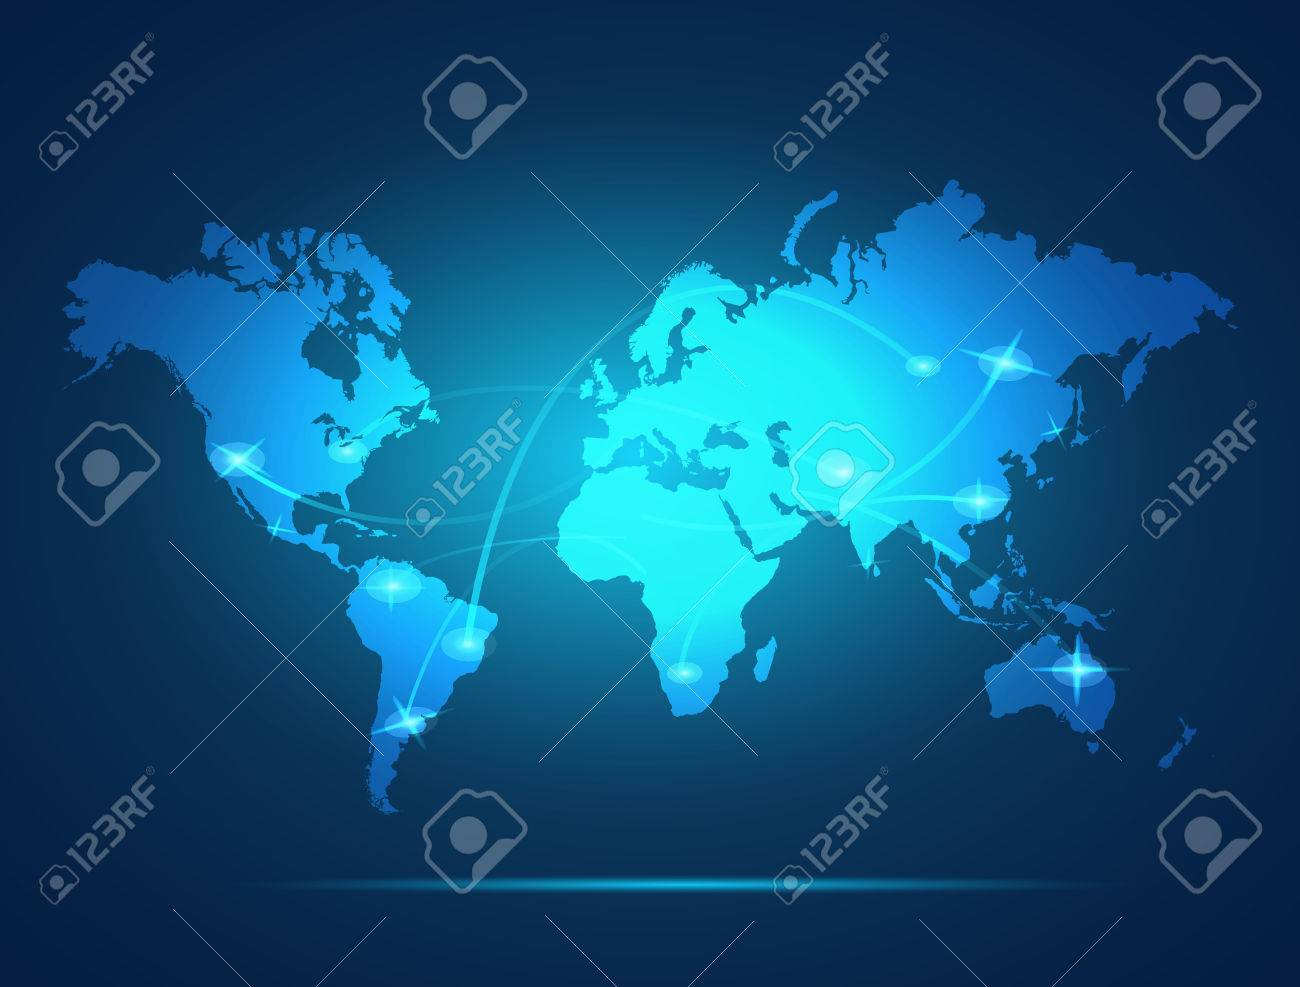 Illustration of a colorful glowing world map background. - 34780782